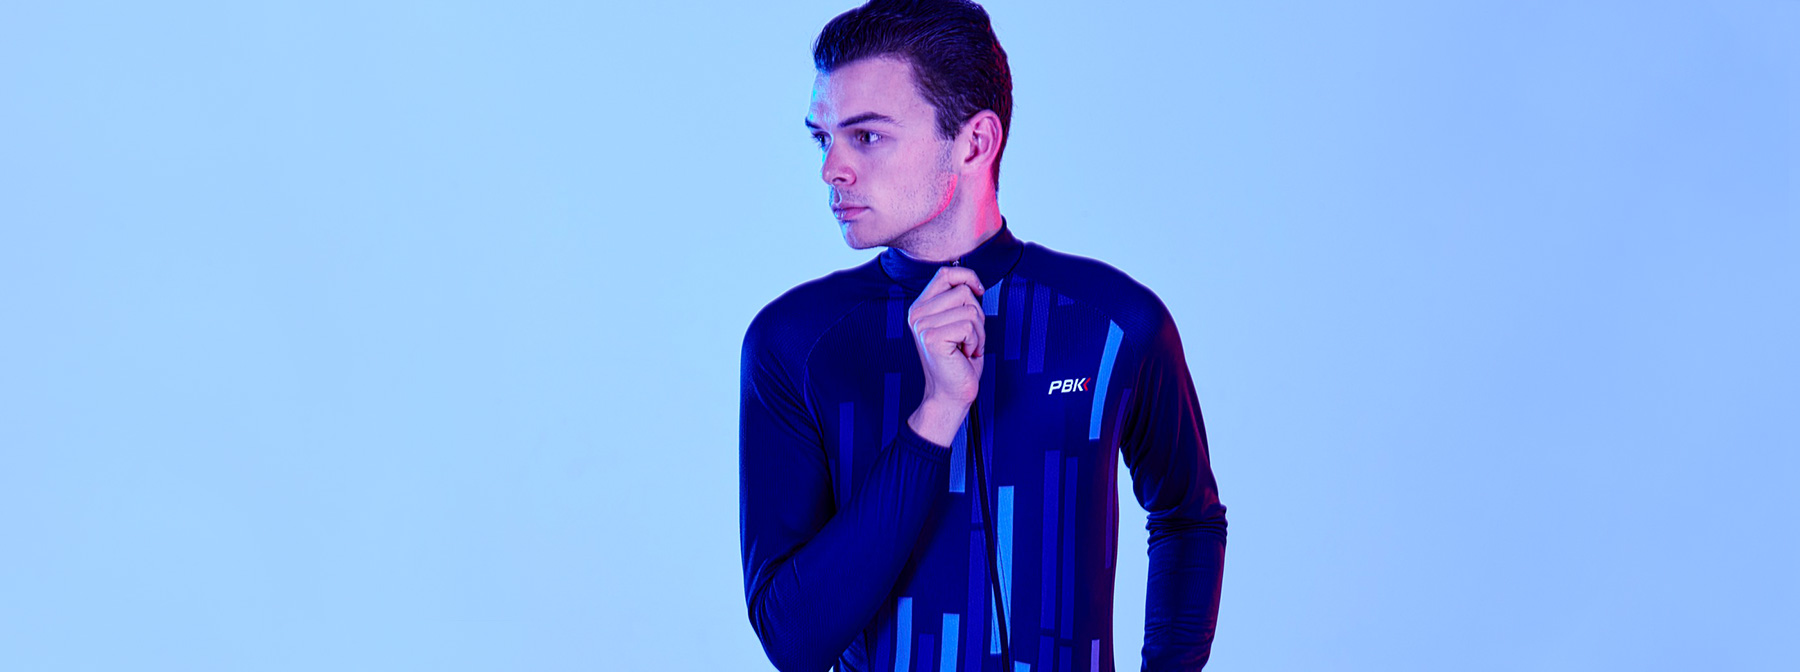 PBK clothing Vello Winter Roubaix Jersey in Blue